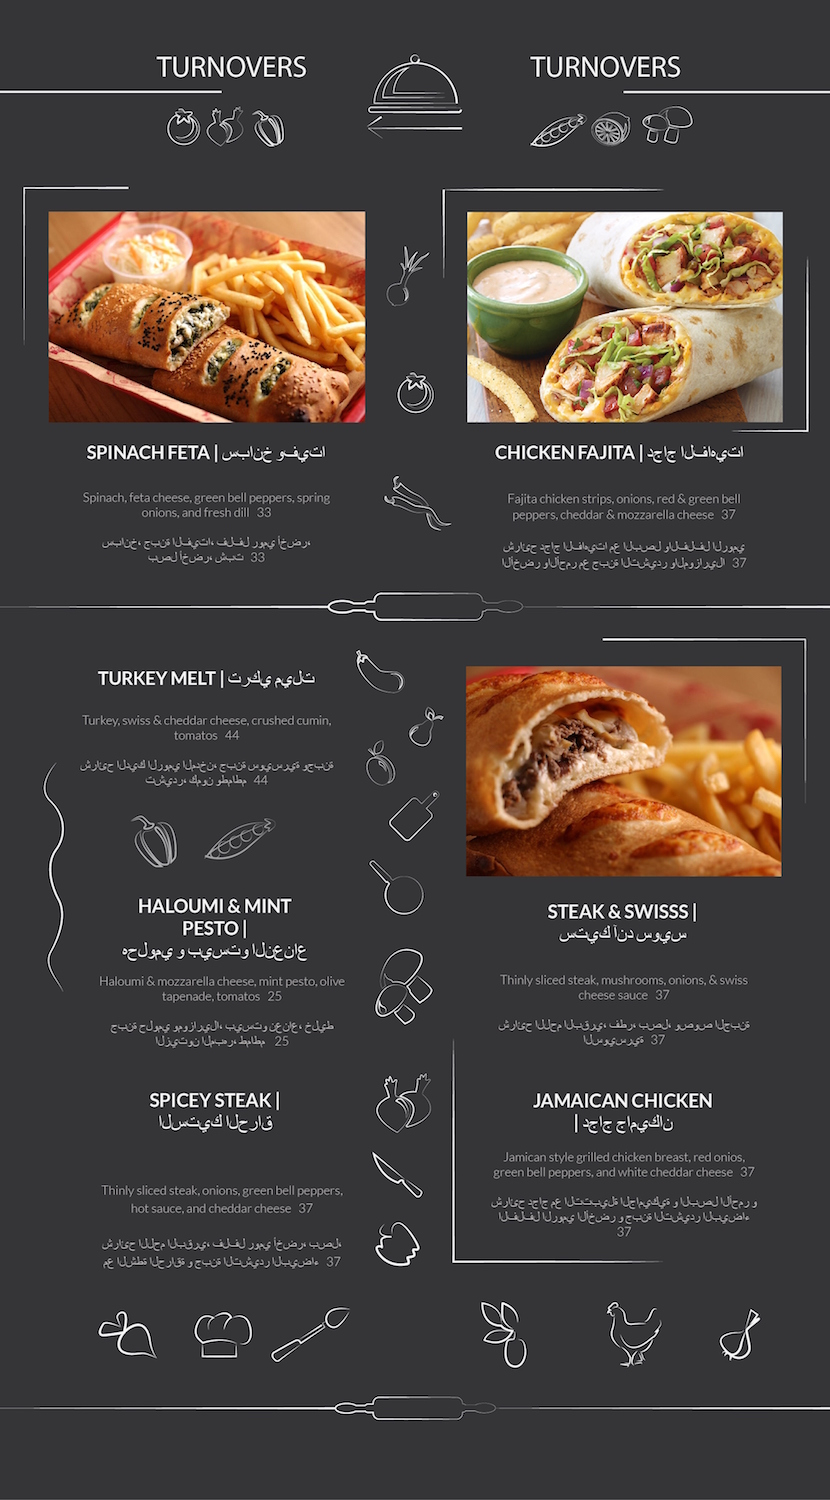 Restaurant menu design for a company by dii